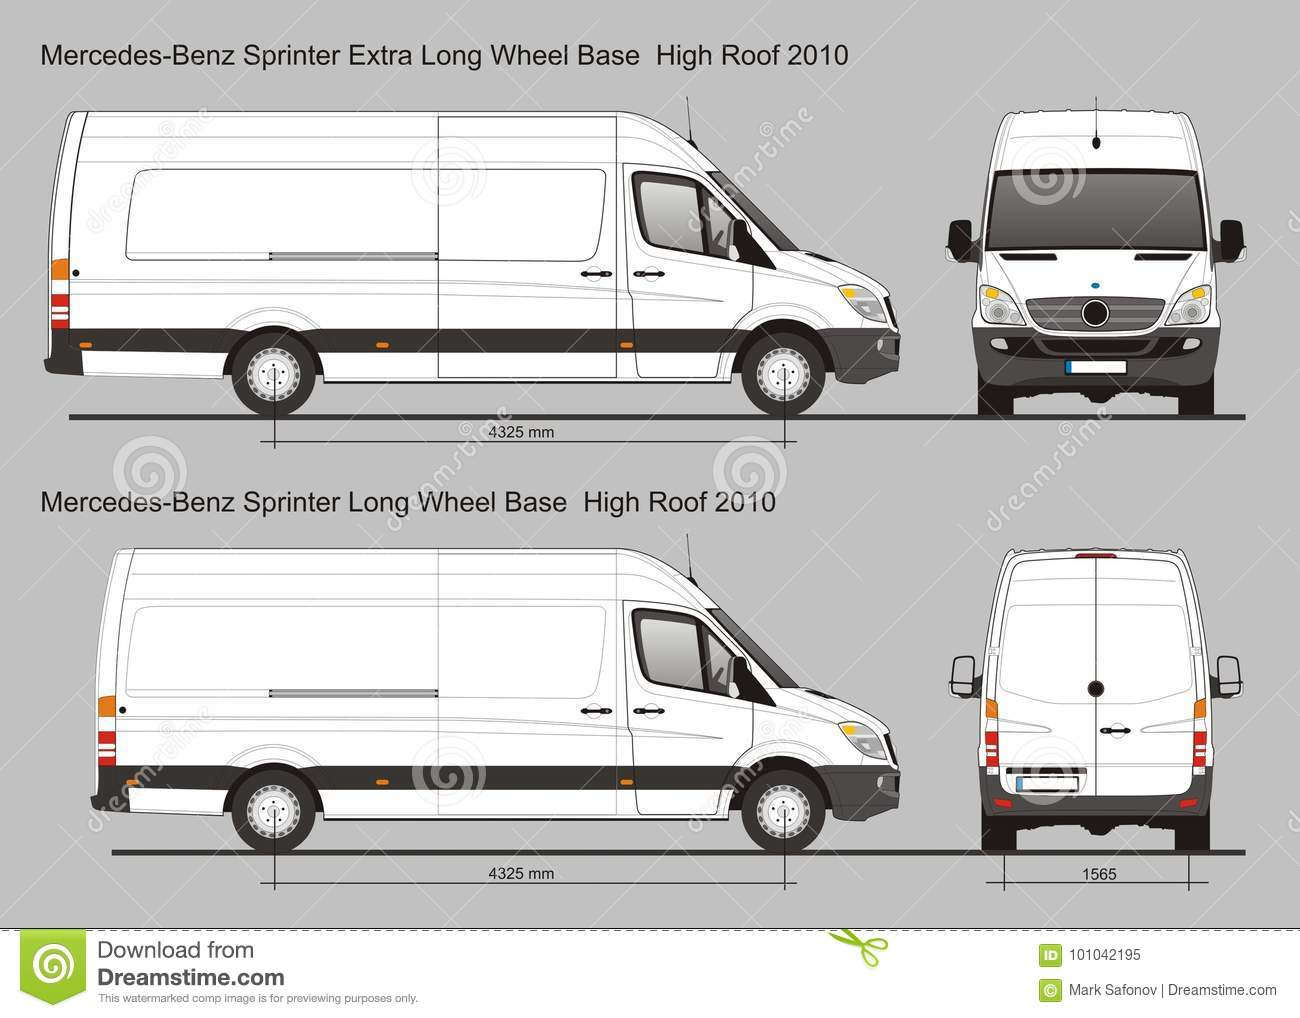 Mercedes Sprinter Van LWB and Extra LWB